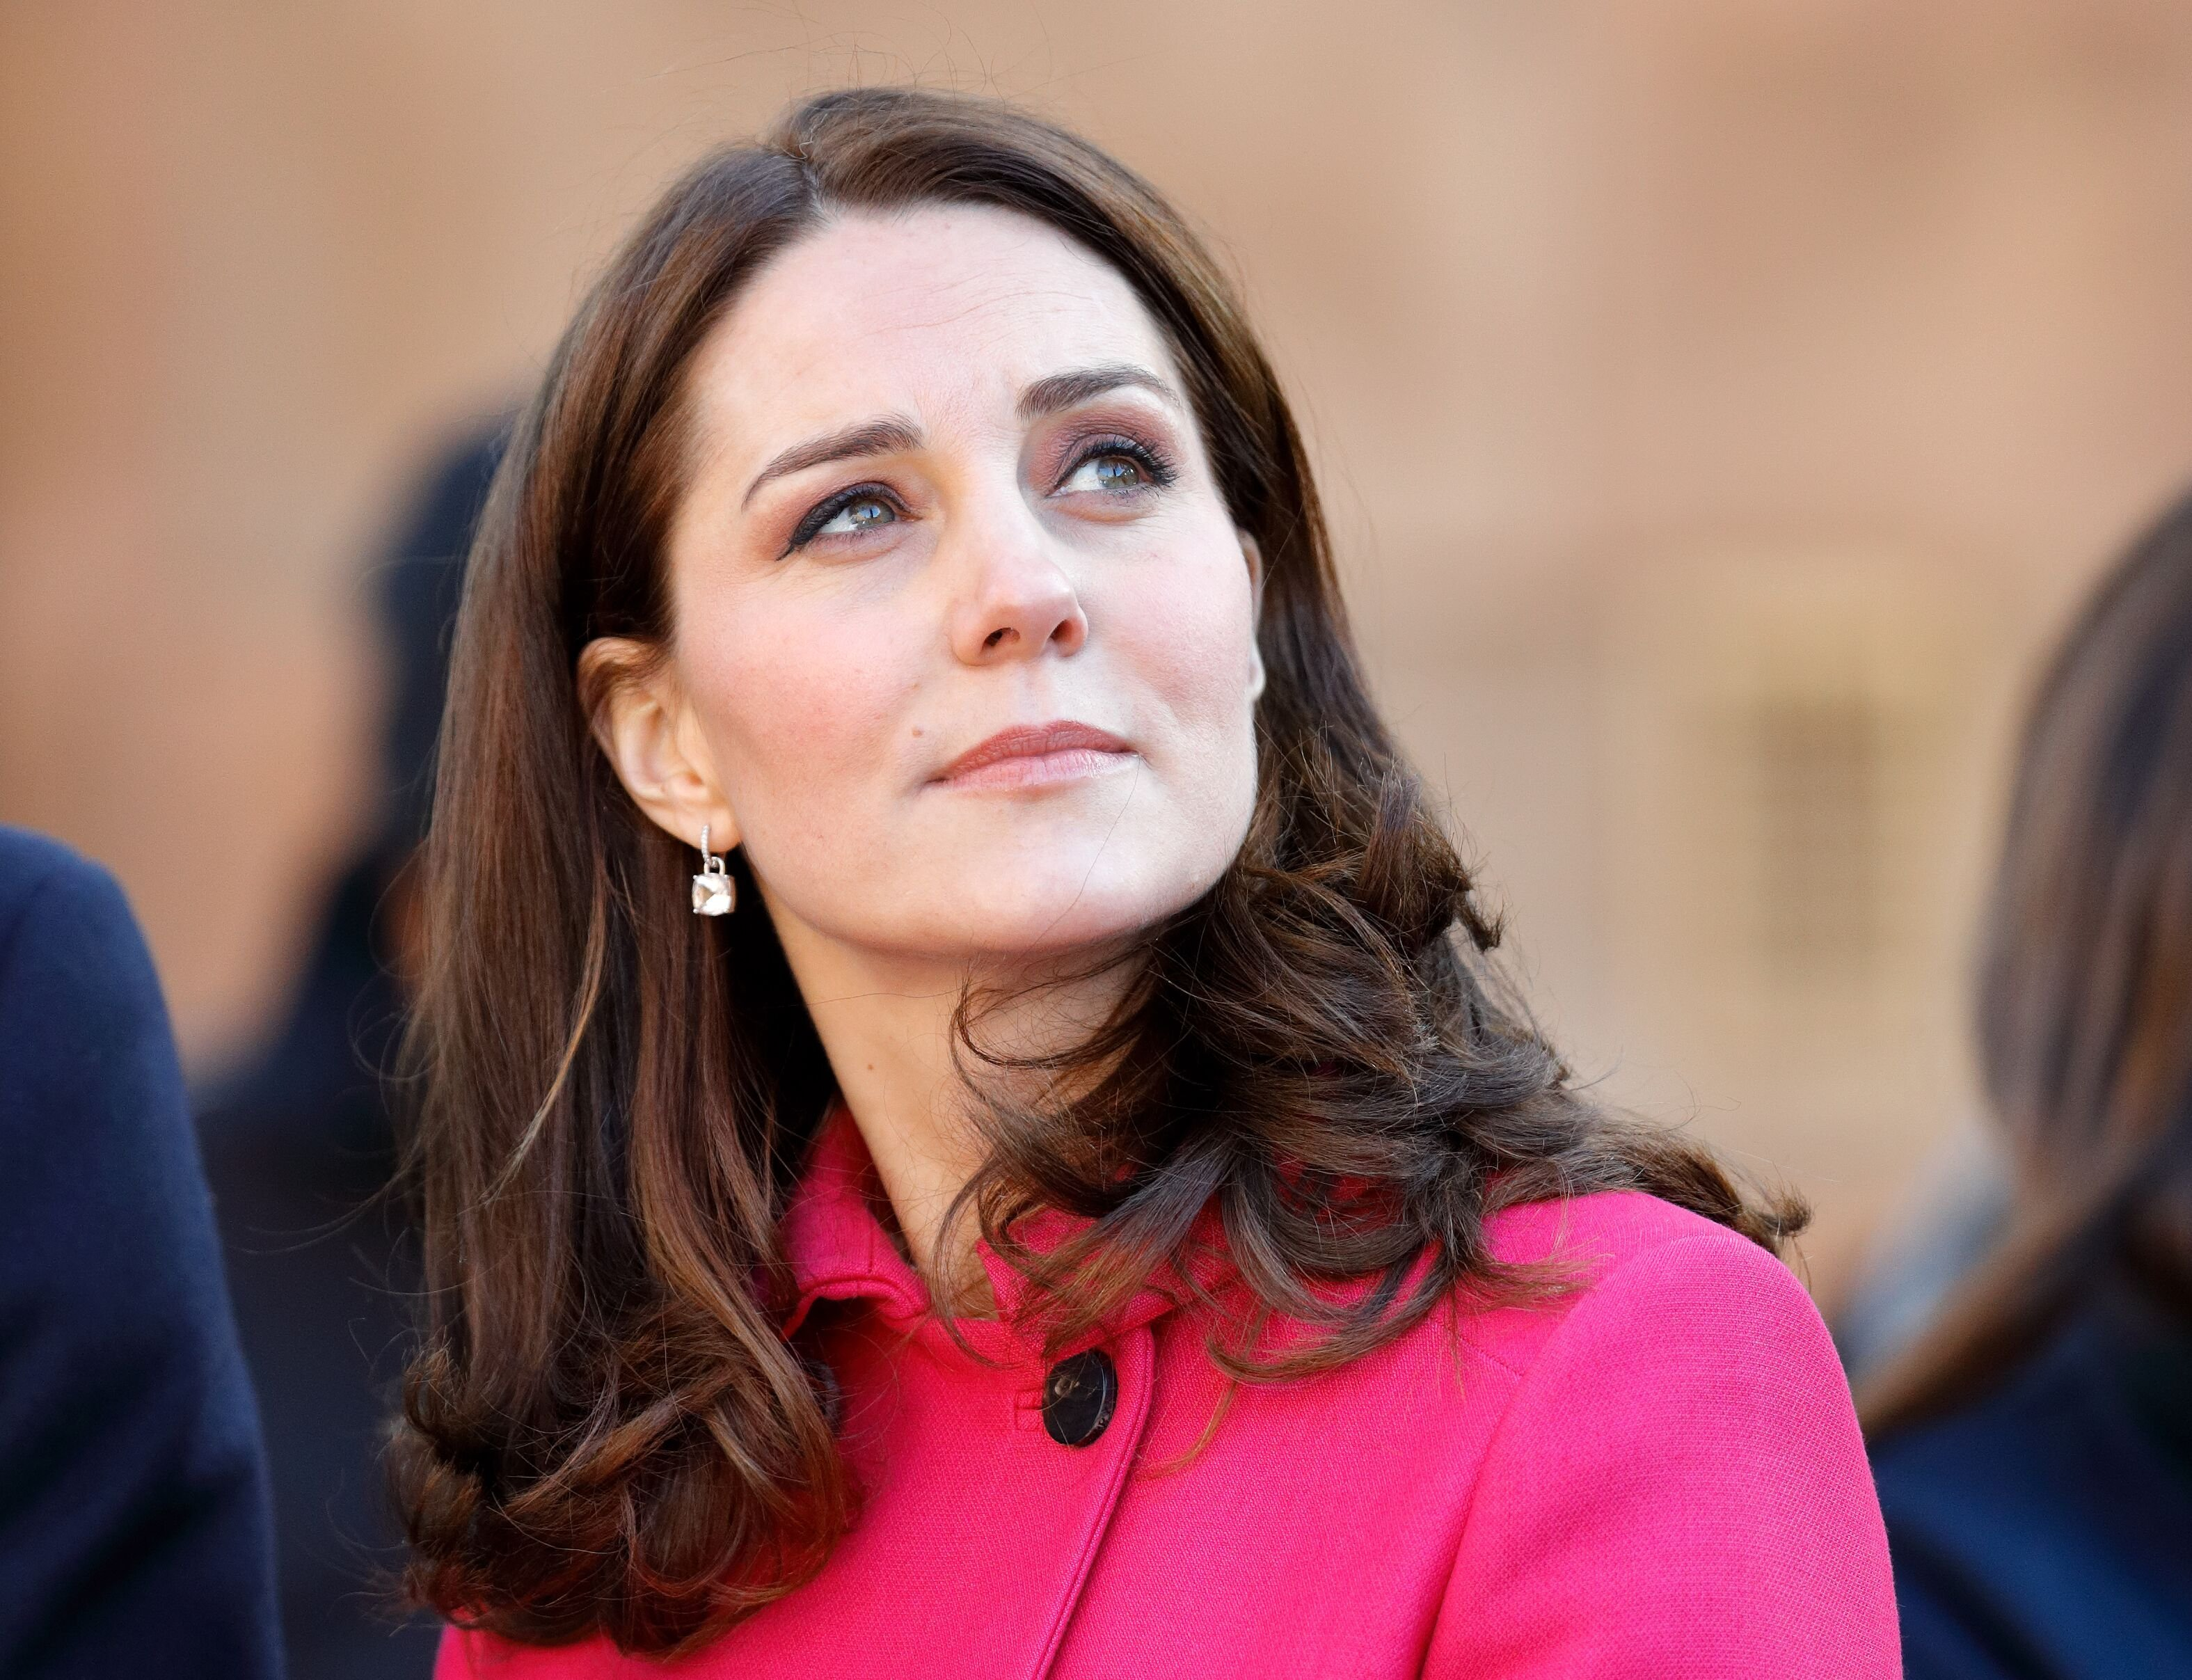 Catherine, Duchess of Cambridge visits Coventry Cathedral on January 16, 2018 in Coventry, England | Photo: Max Mumby/Indigo/Getty Images)